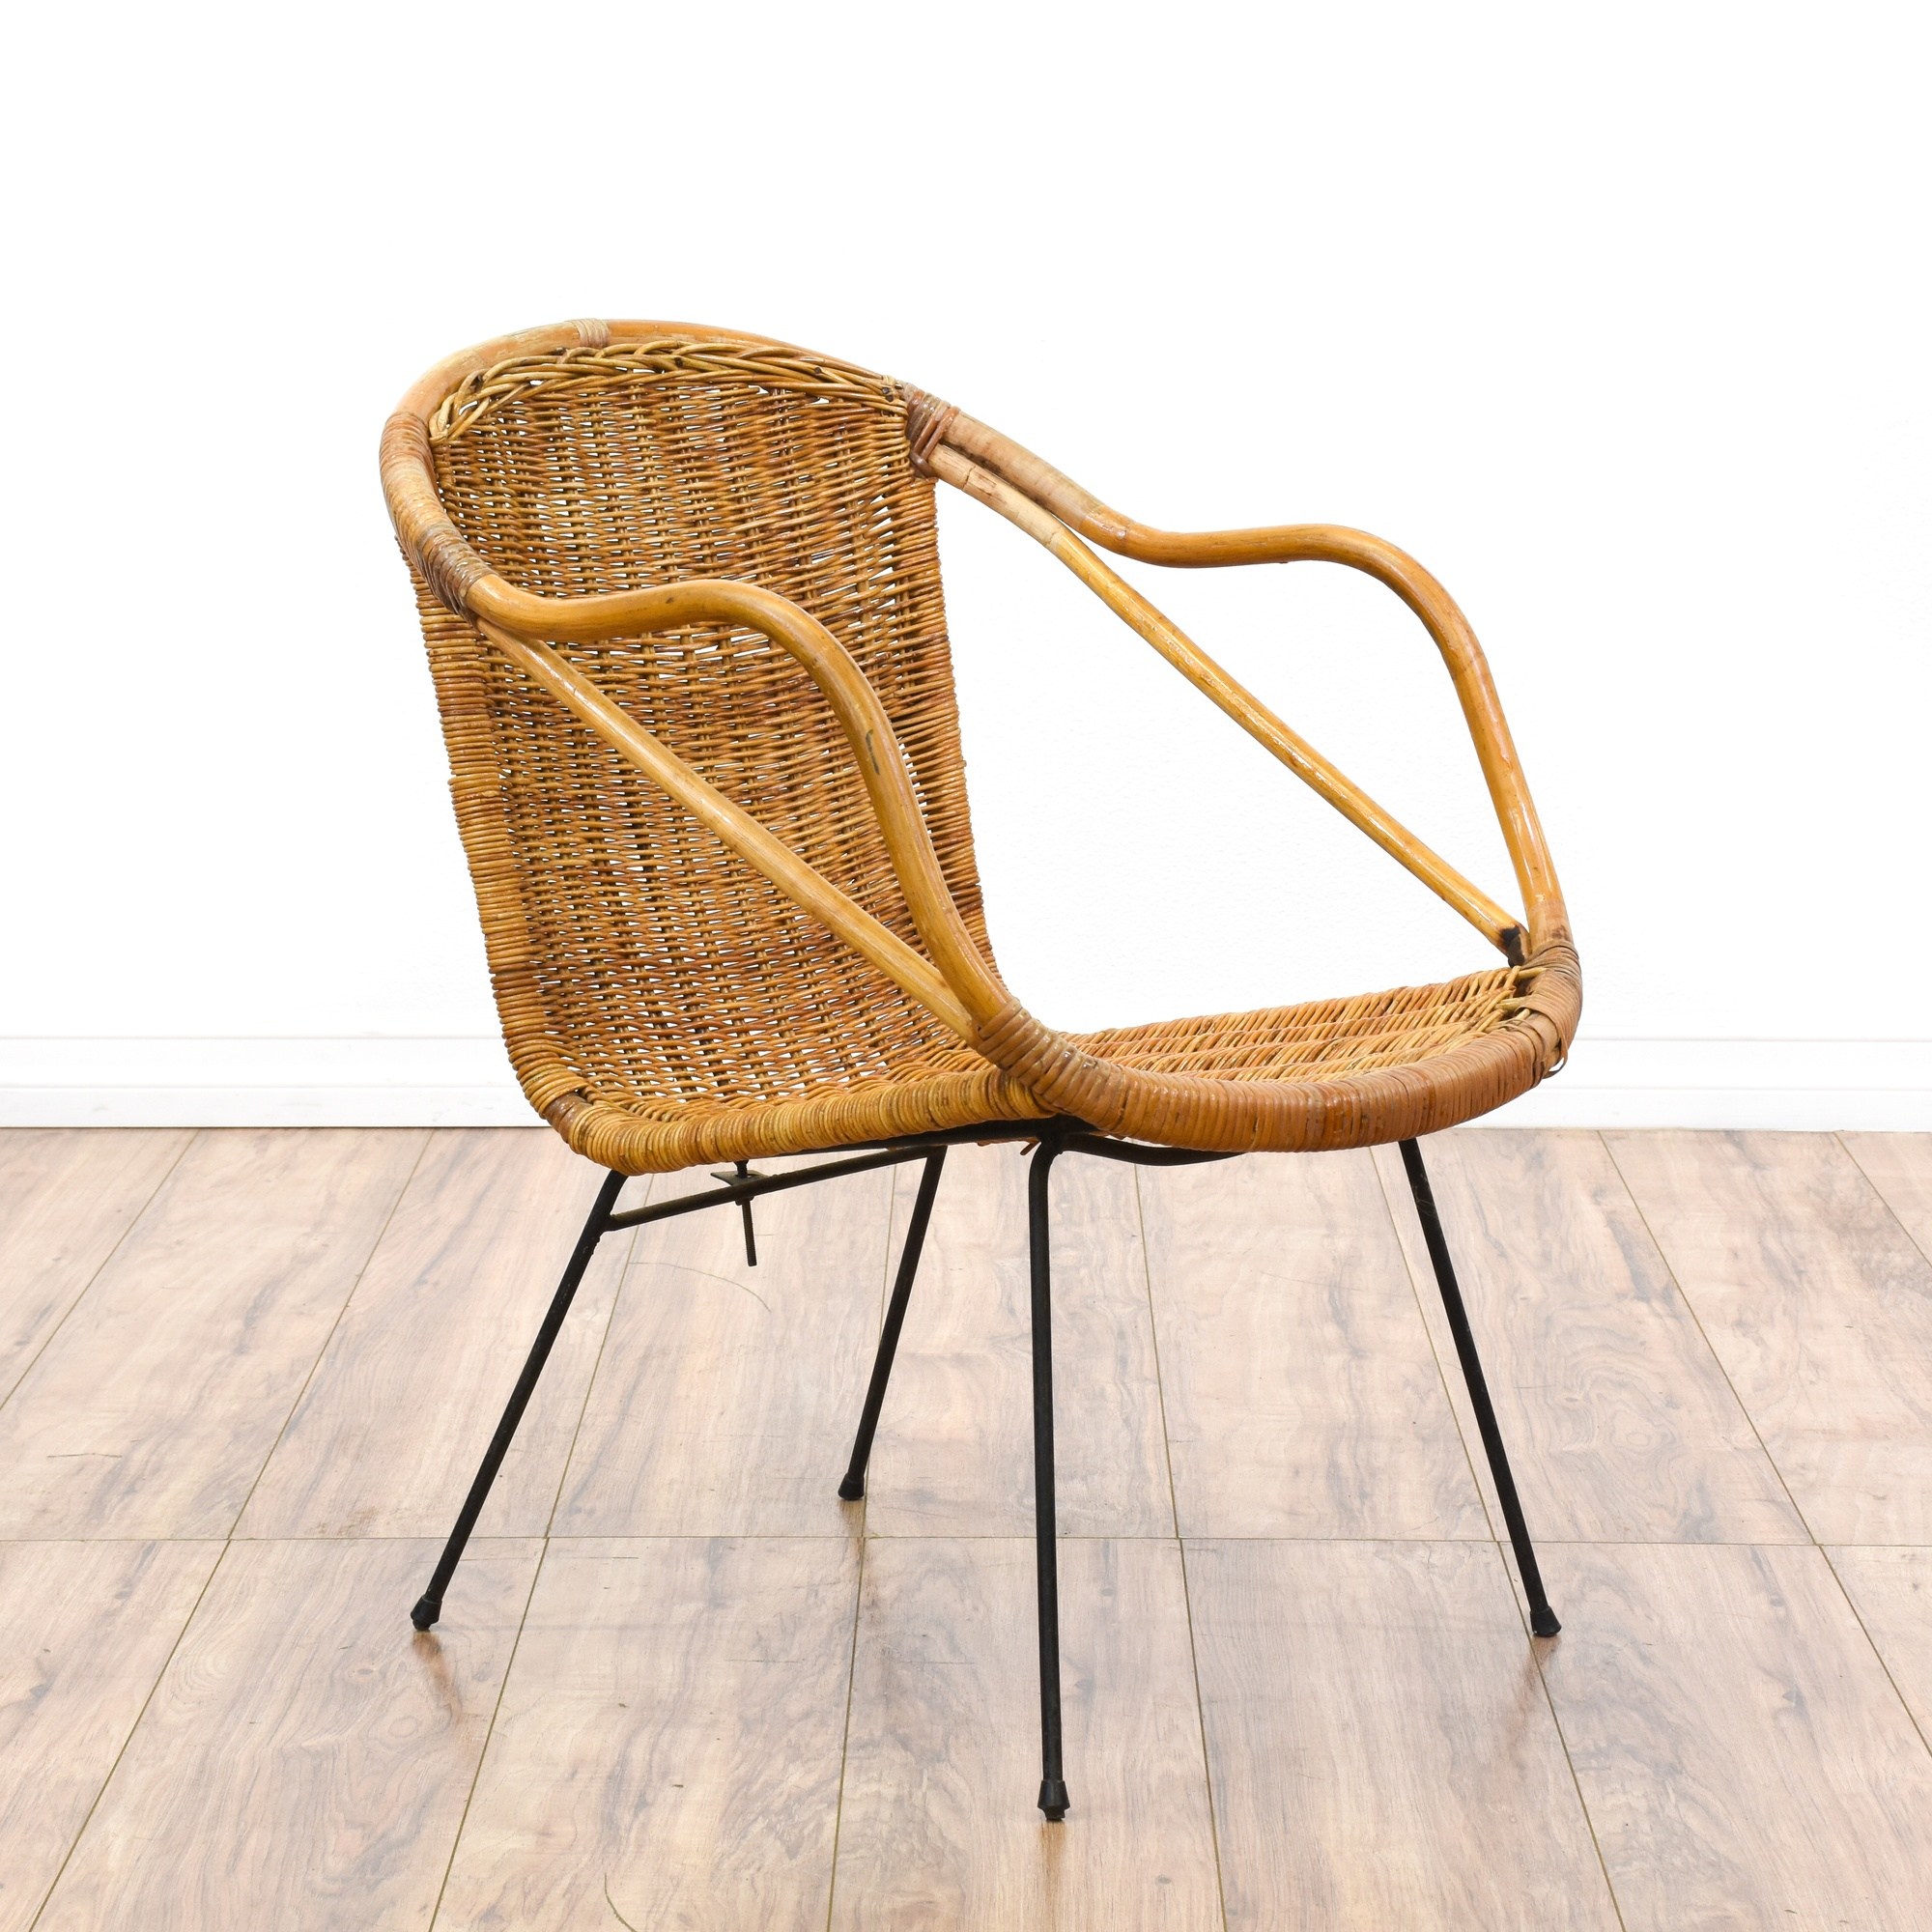 use residential legler outdoor and by stacking product a for gian hospitality franco basket chair